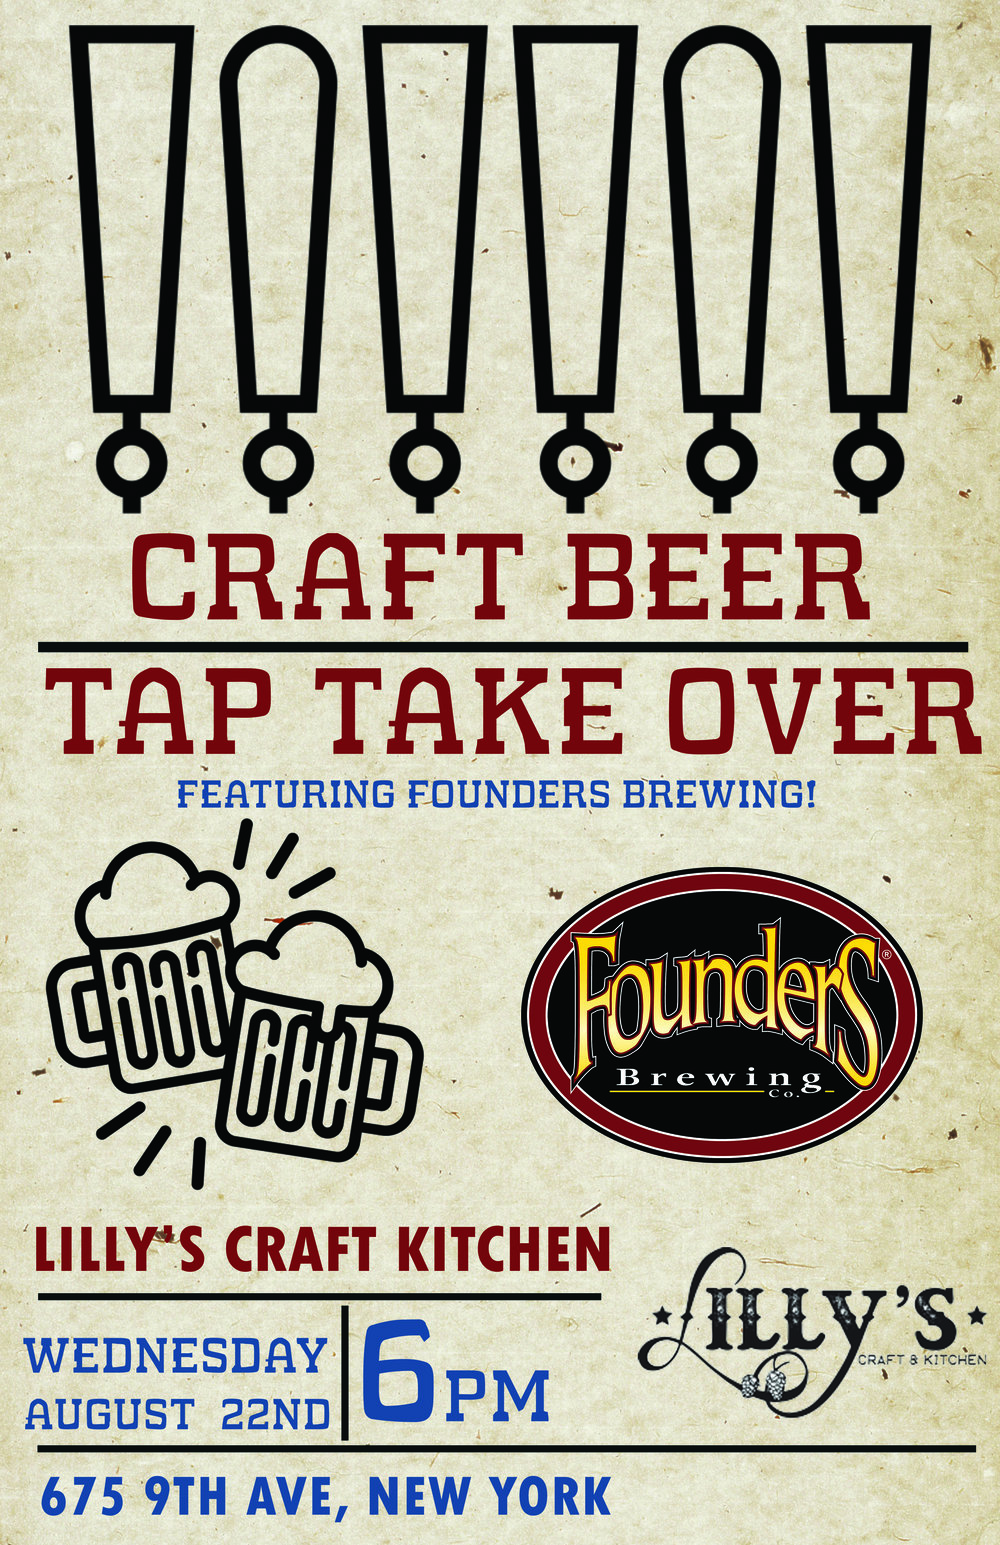 LILLYS CRAFT KITCHEN_FOUNDERS TAP TAKE OVER.jpg